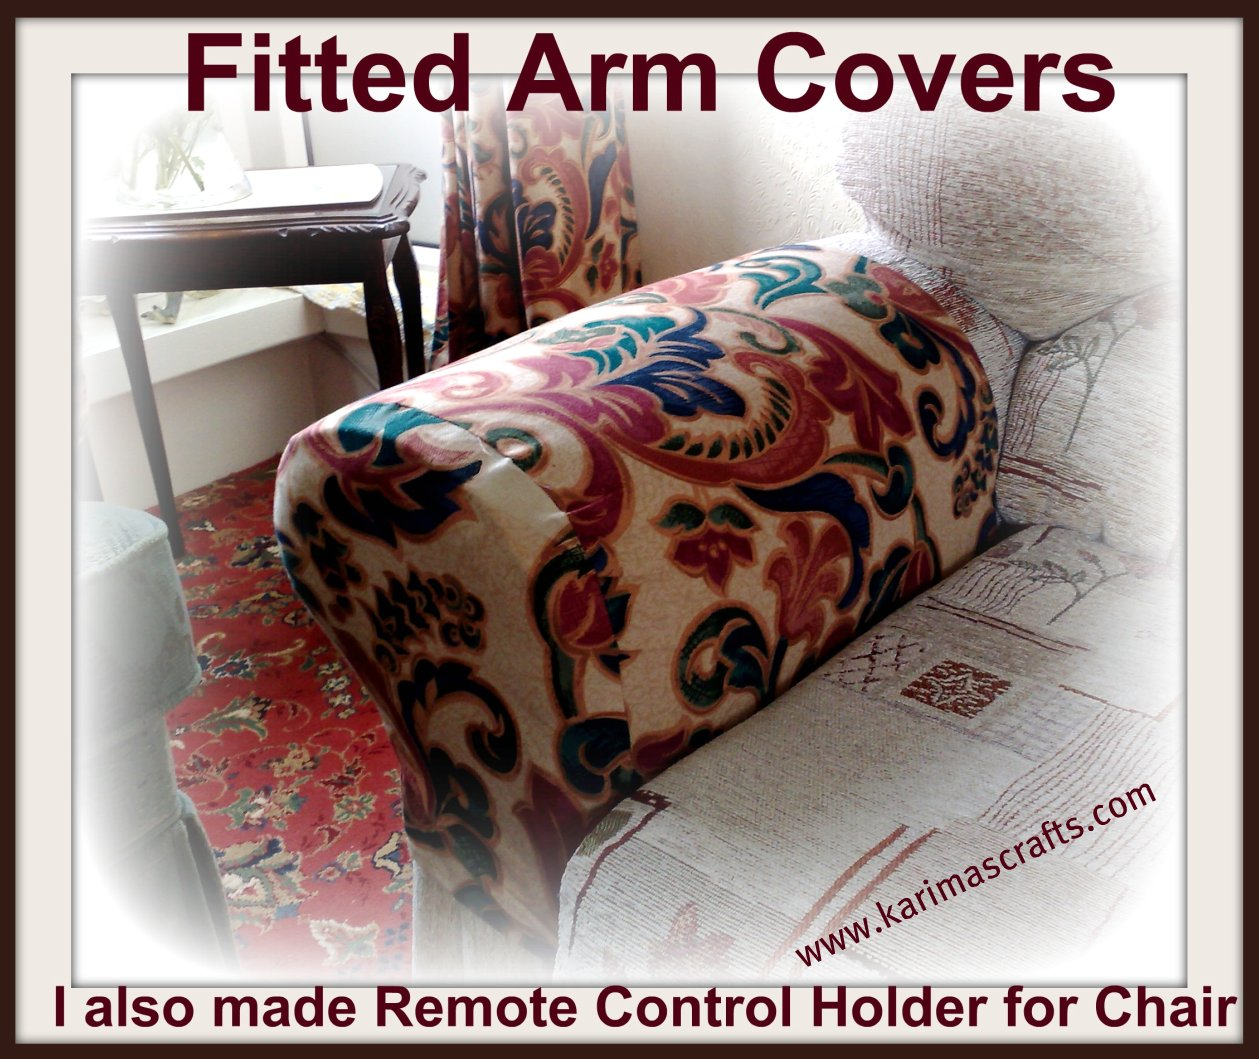 Arm Covers For Chairs Karima 39s Crafts Arm Covers And Remote Control Holder